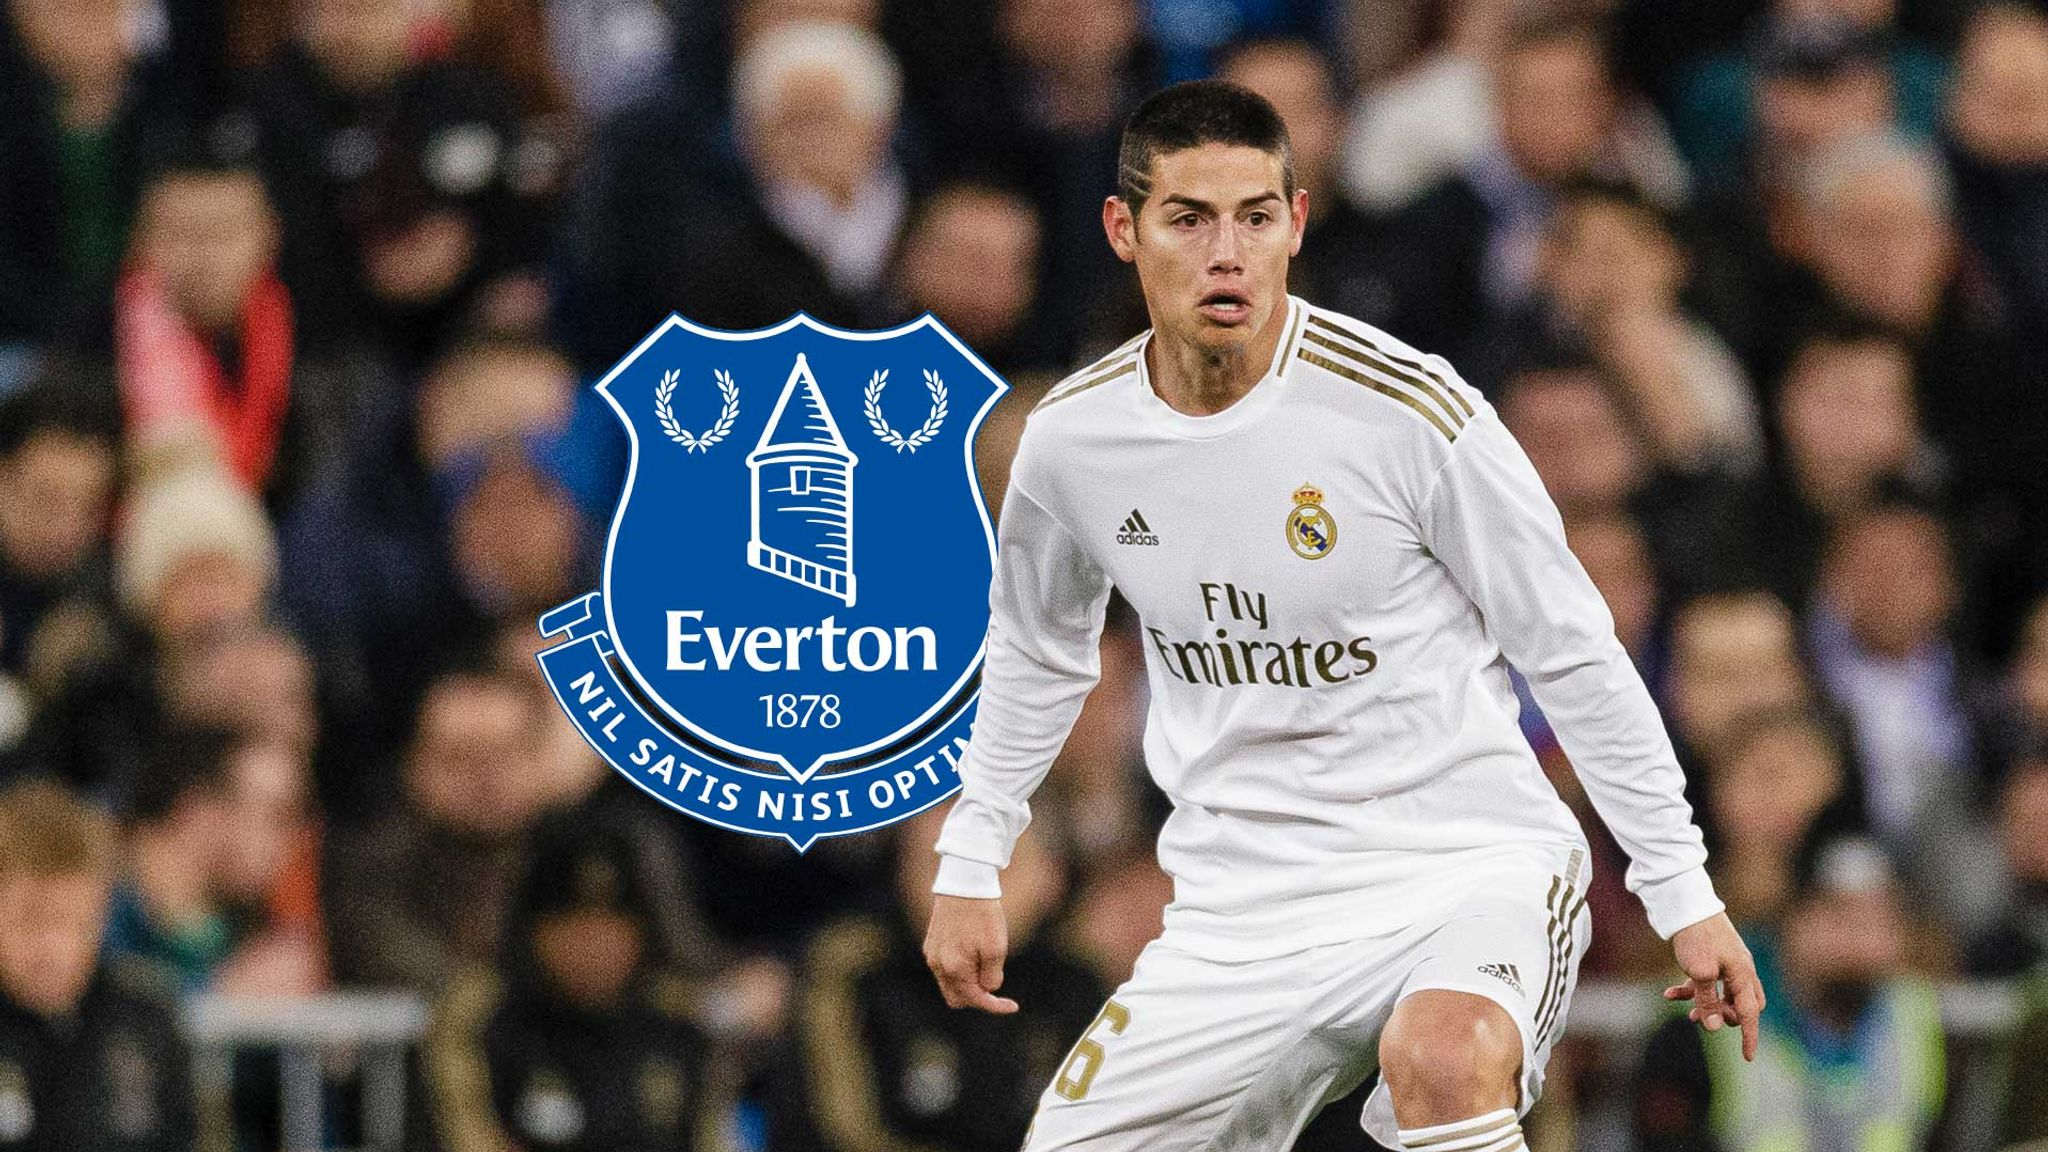 James Rodriguez The Curious Case Of Real Madrid Forward On Course For Everton Football News Sky Sports